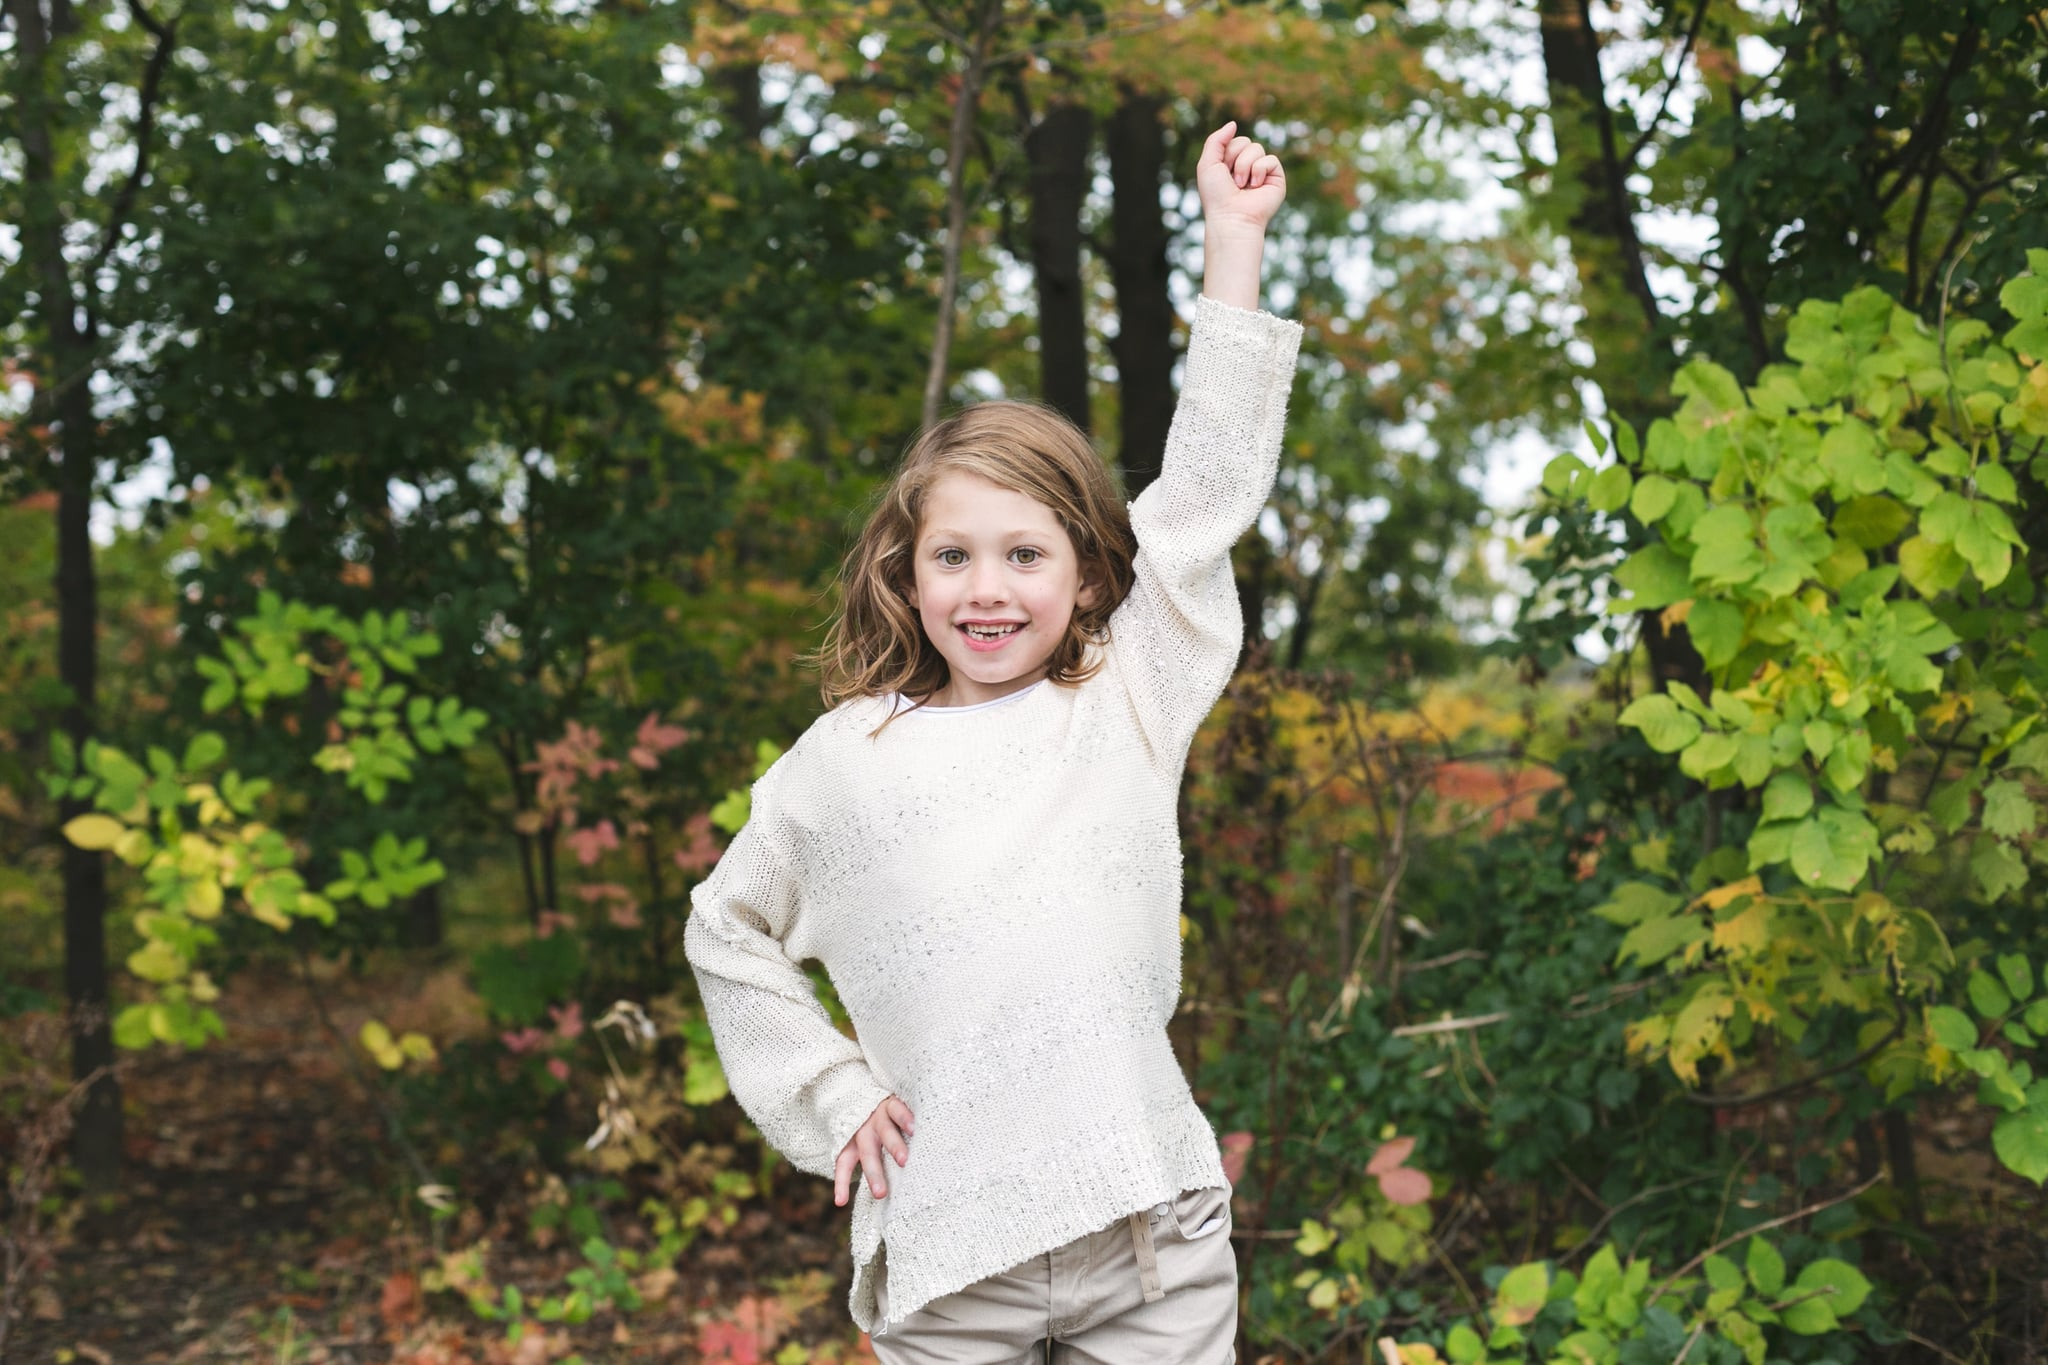 12 Things You Can Do to Build Your Child's Confidence, Starting Now